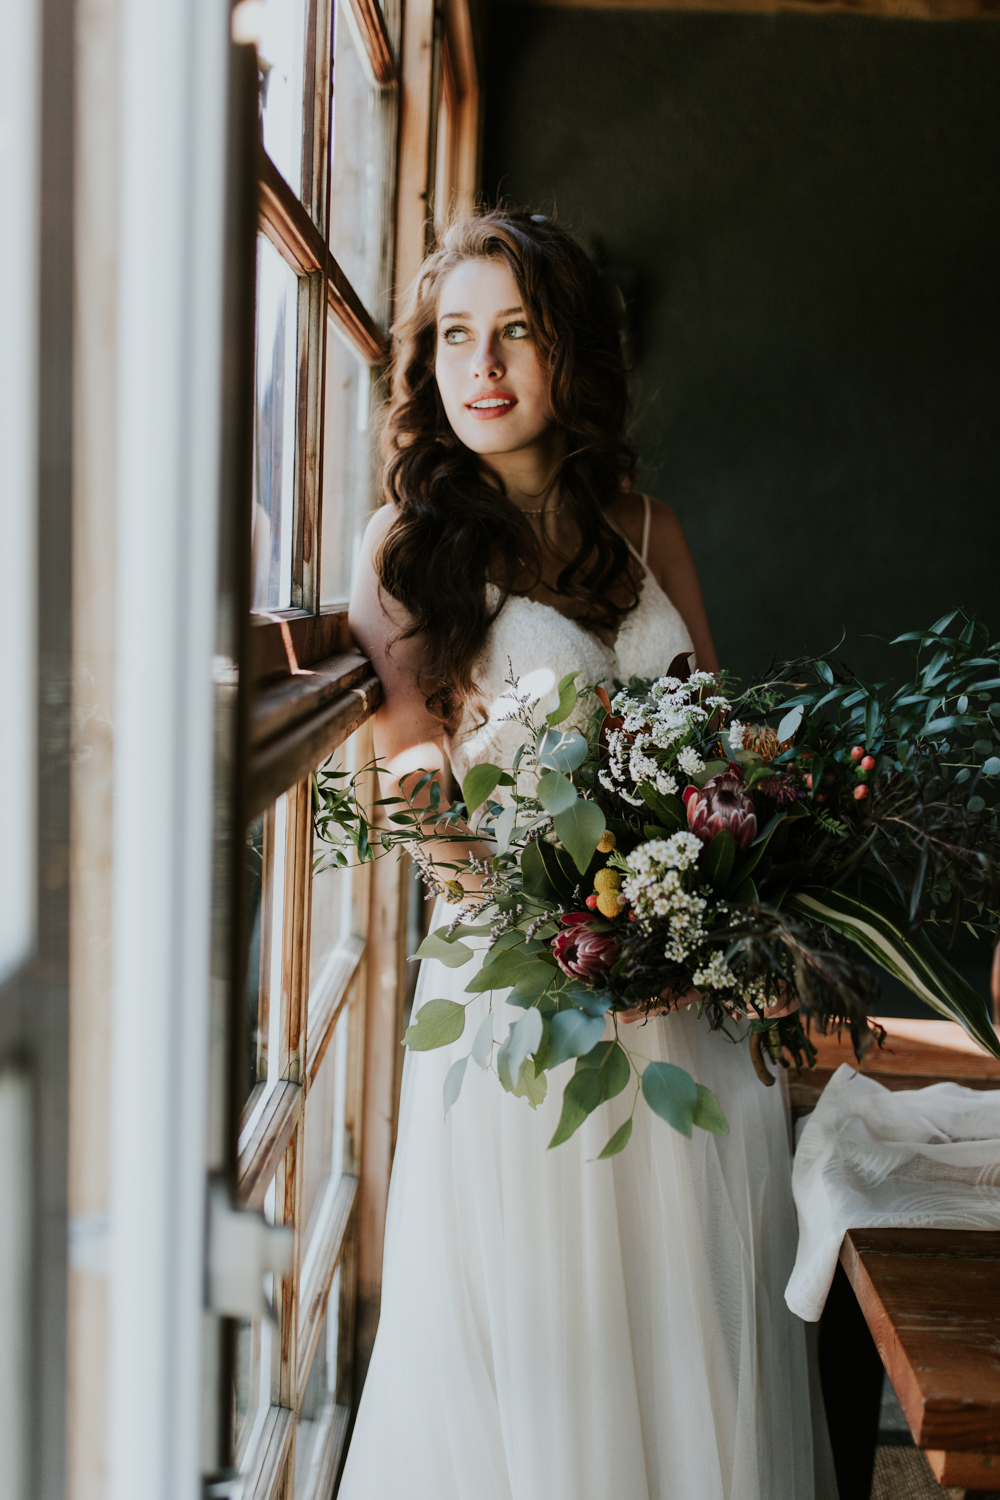 styled-colourful-wedding-photoshoot-bride-bhldn-floral-design-alberta-portrait-25.jpg